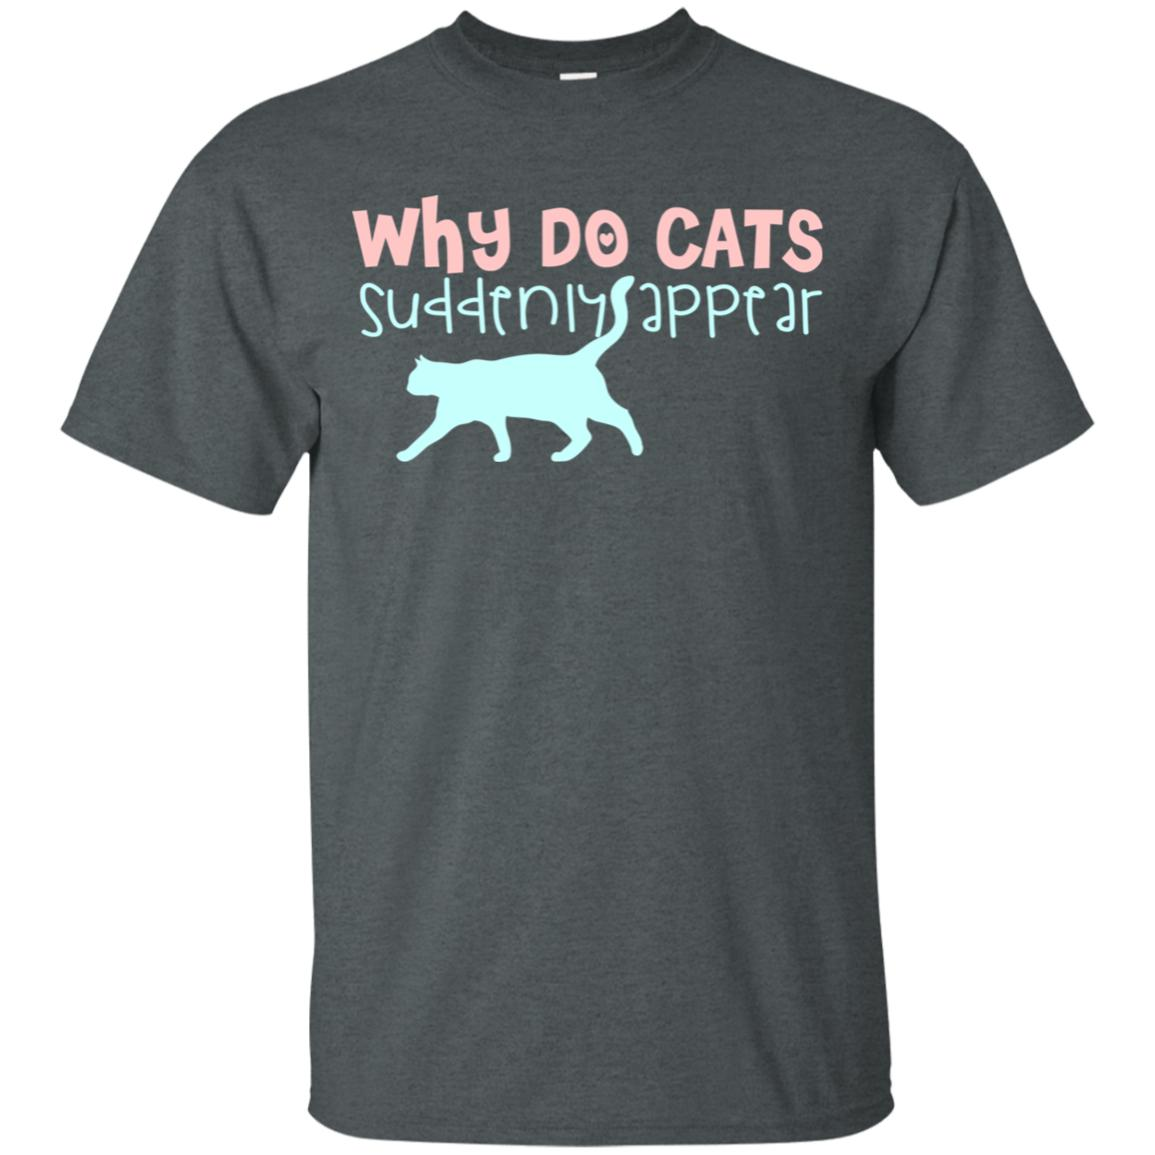 WHY DO CATS SUDDENLY APPEAR 😻 T-SHIRT